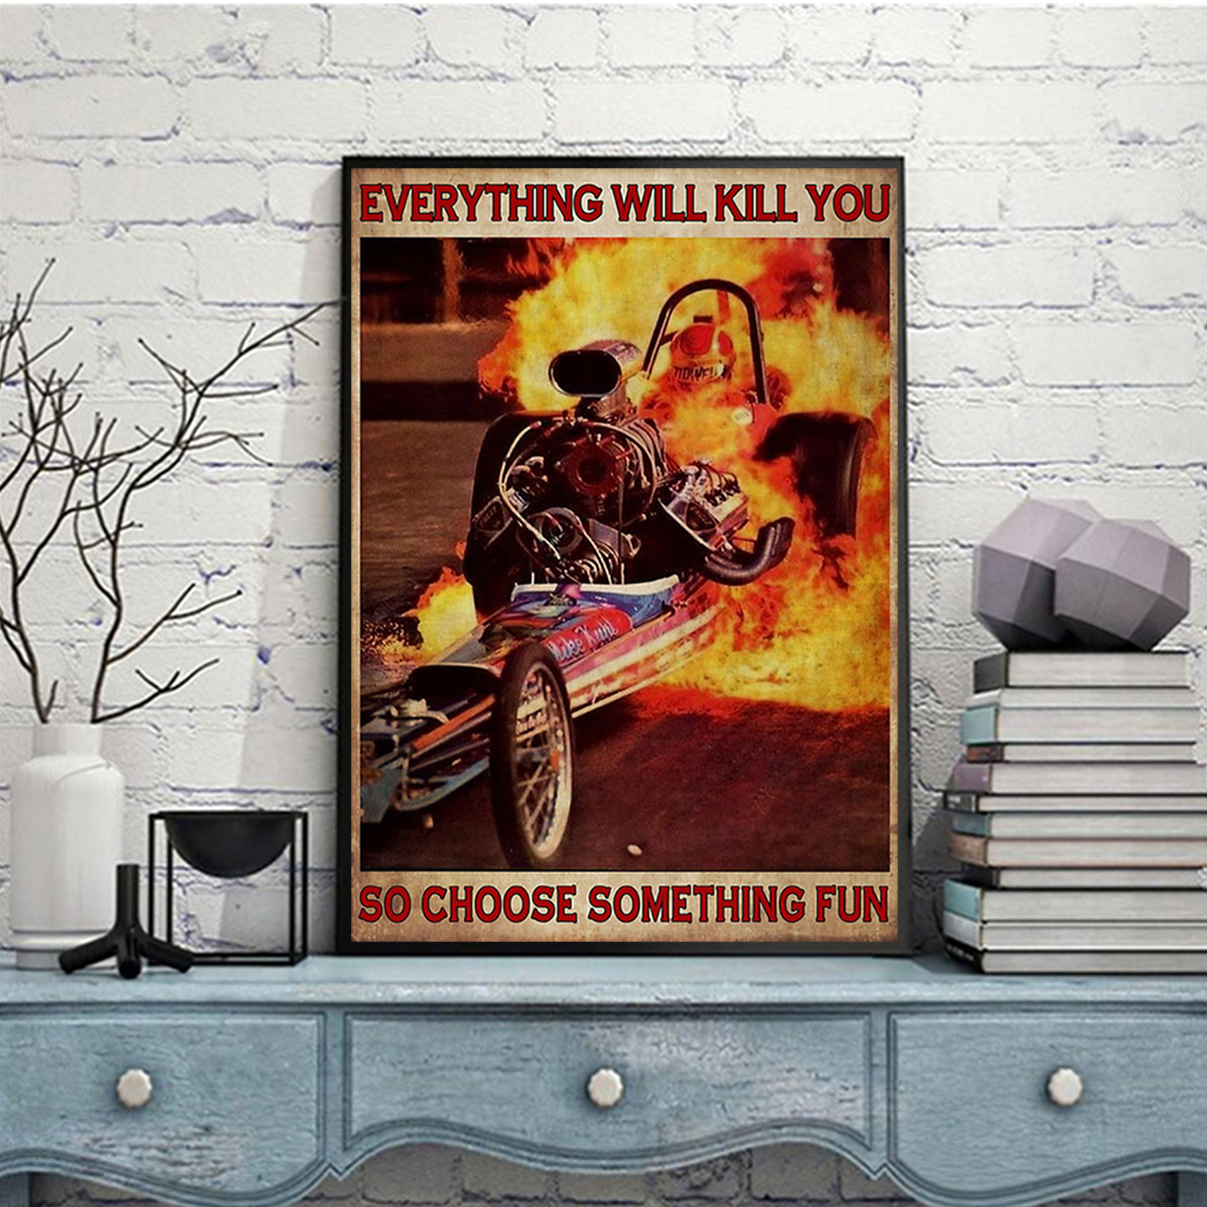 Fire drag racing everything will kill you so choose something fun poster A3